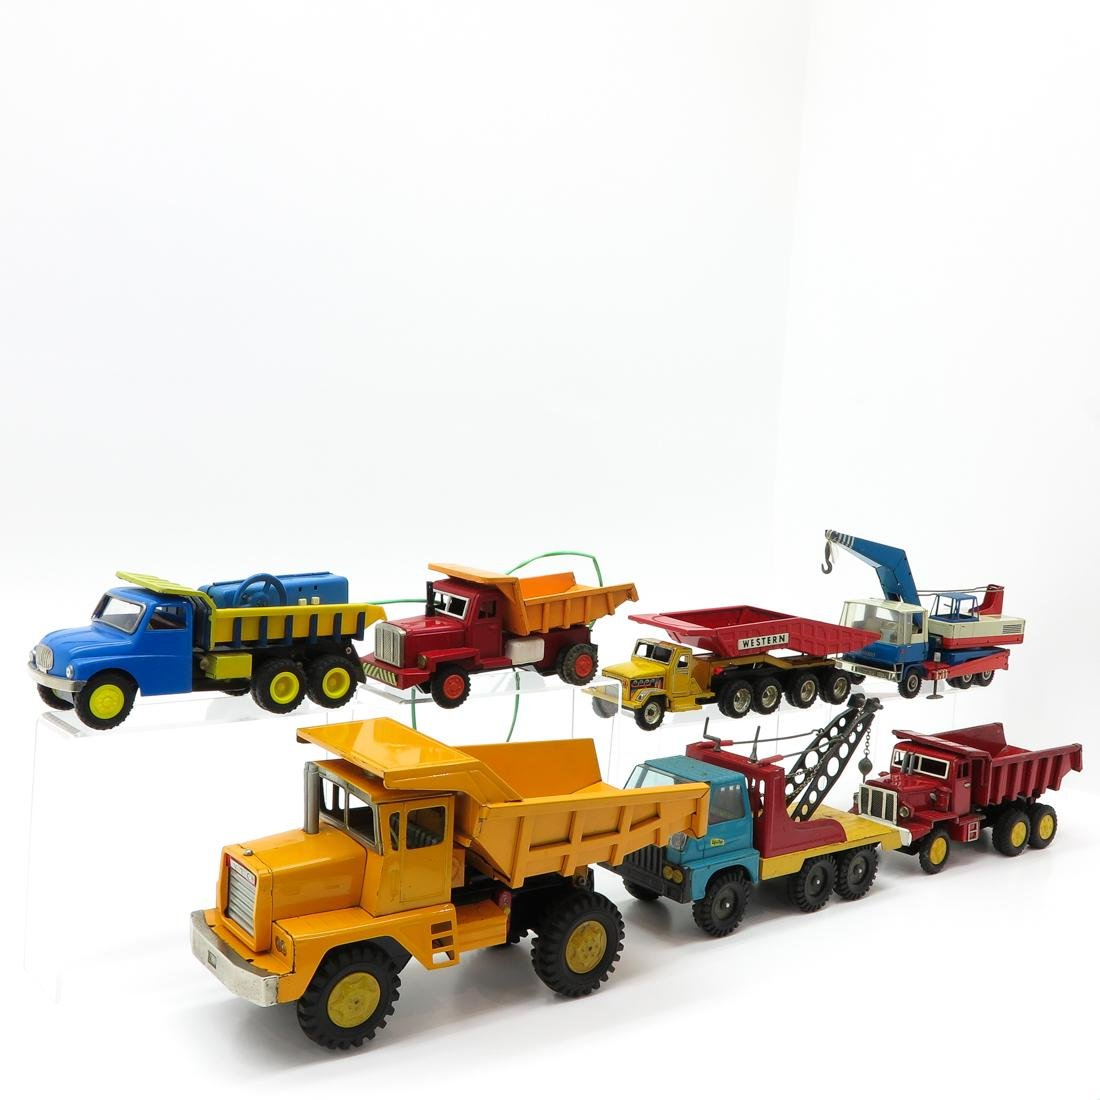 Lot of 7 Vintage Toy Trucks and Tractors - 2